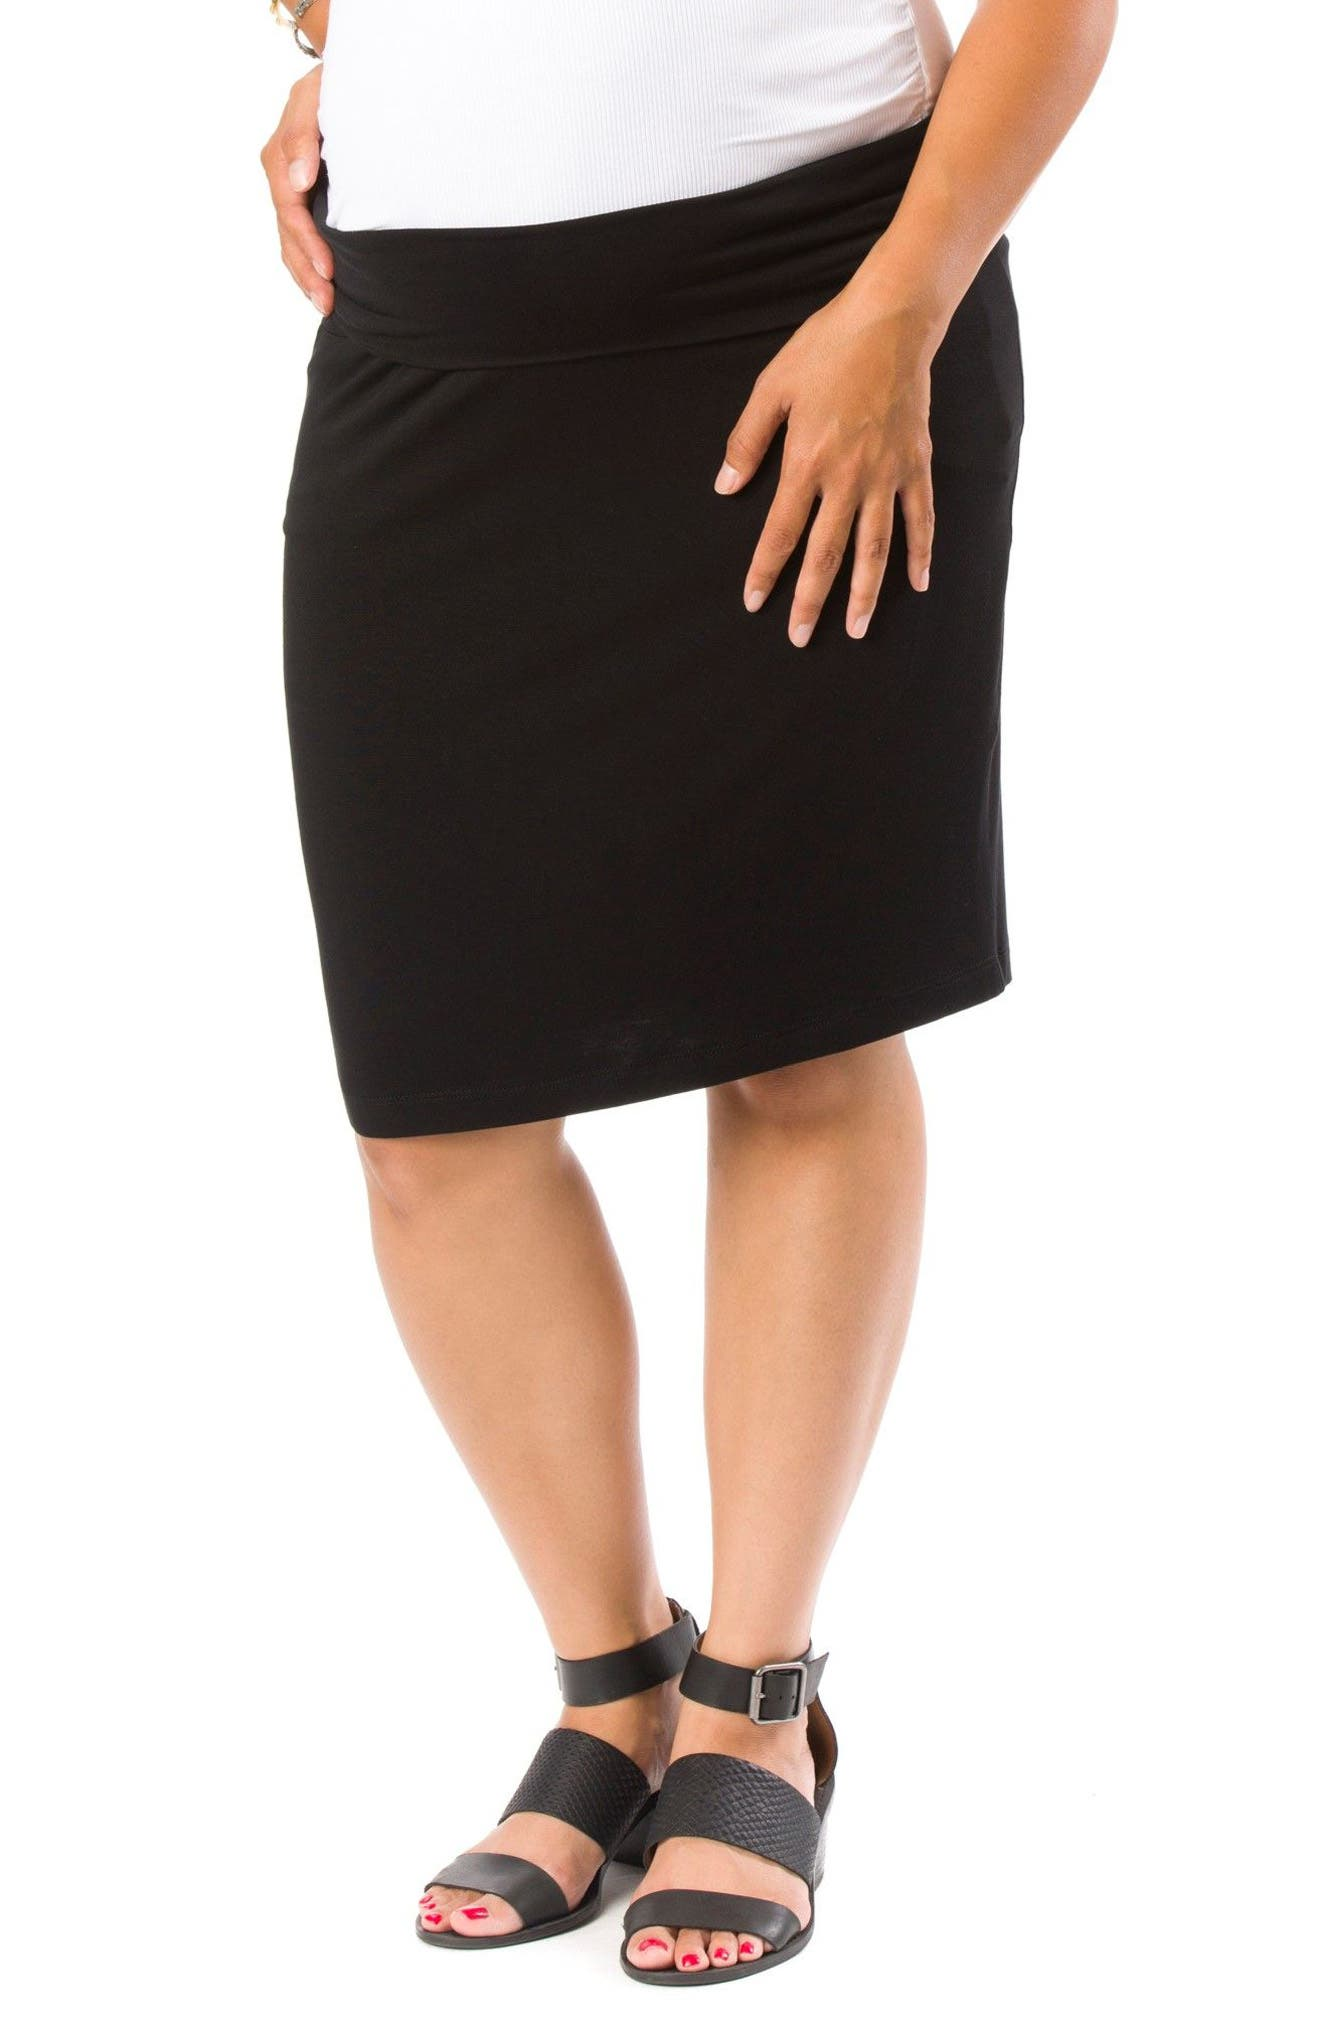 Cleo Maternity Pencil Skirt,                         Main,                         color, Black